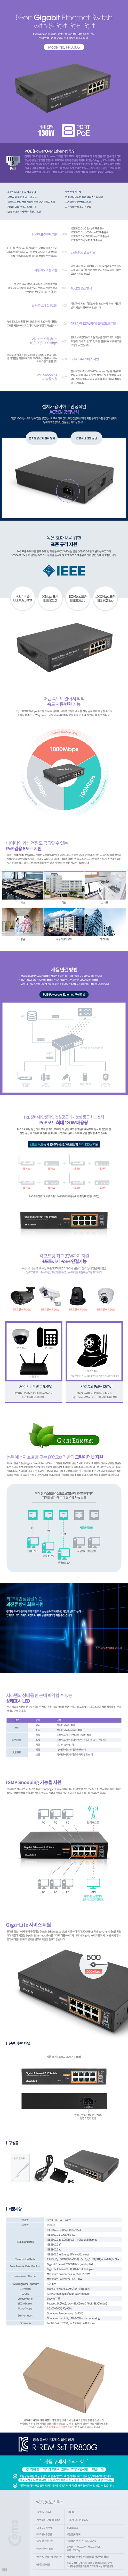 NetTop SyncView PR800G 스위치 허브